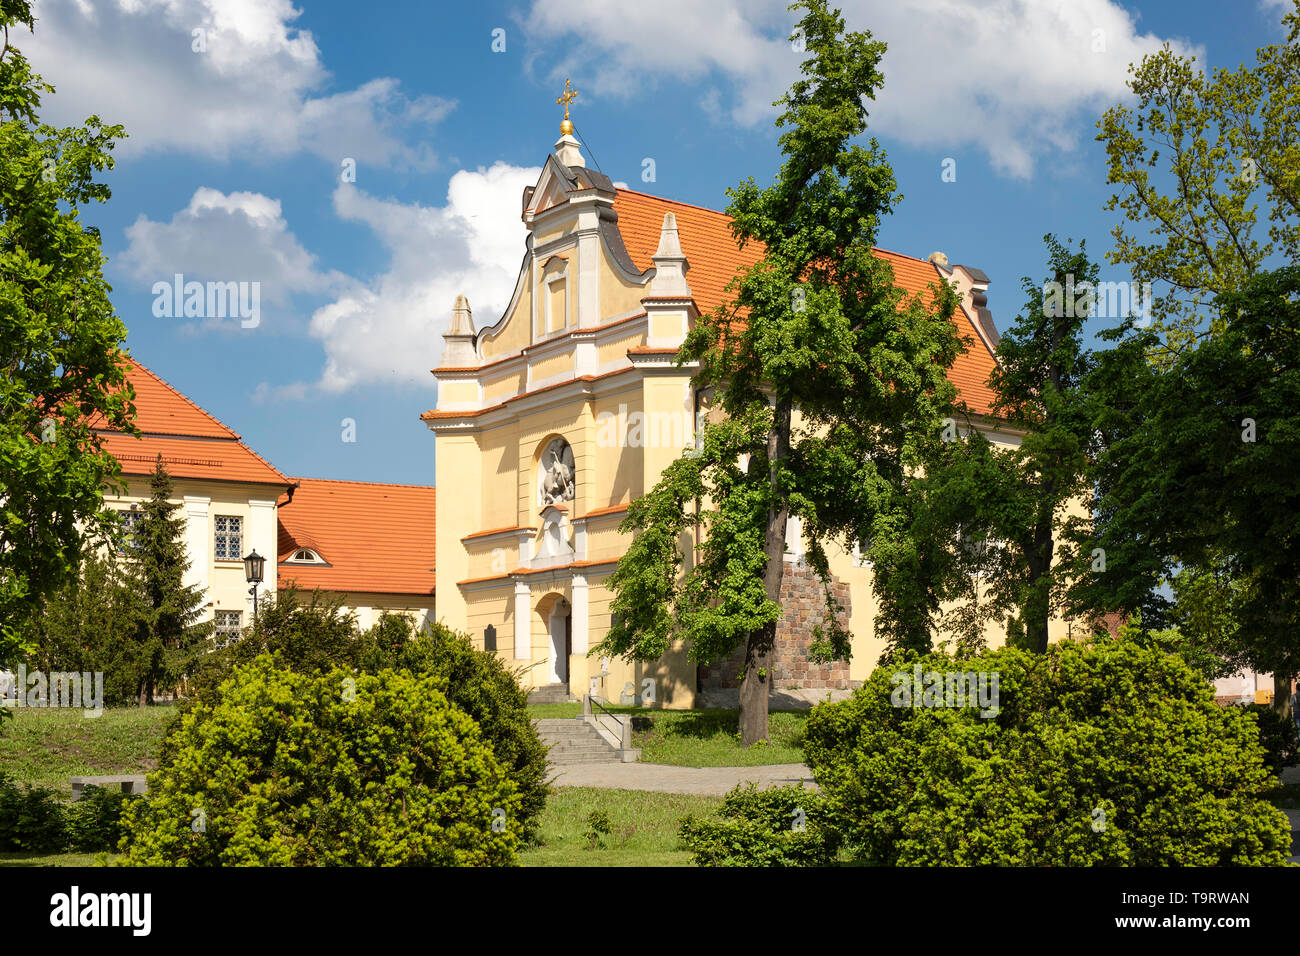 St George's Church in Gniezno, Poland. Old town sacral buildings, architecture of the first polish capital. - Stock Image